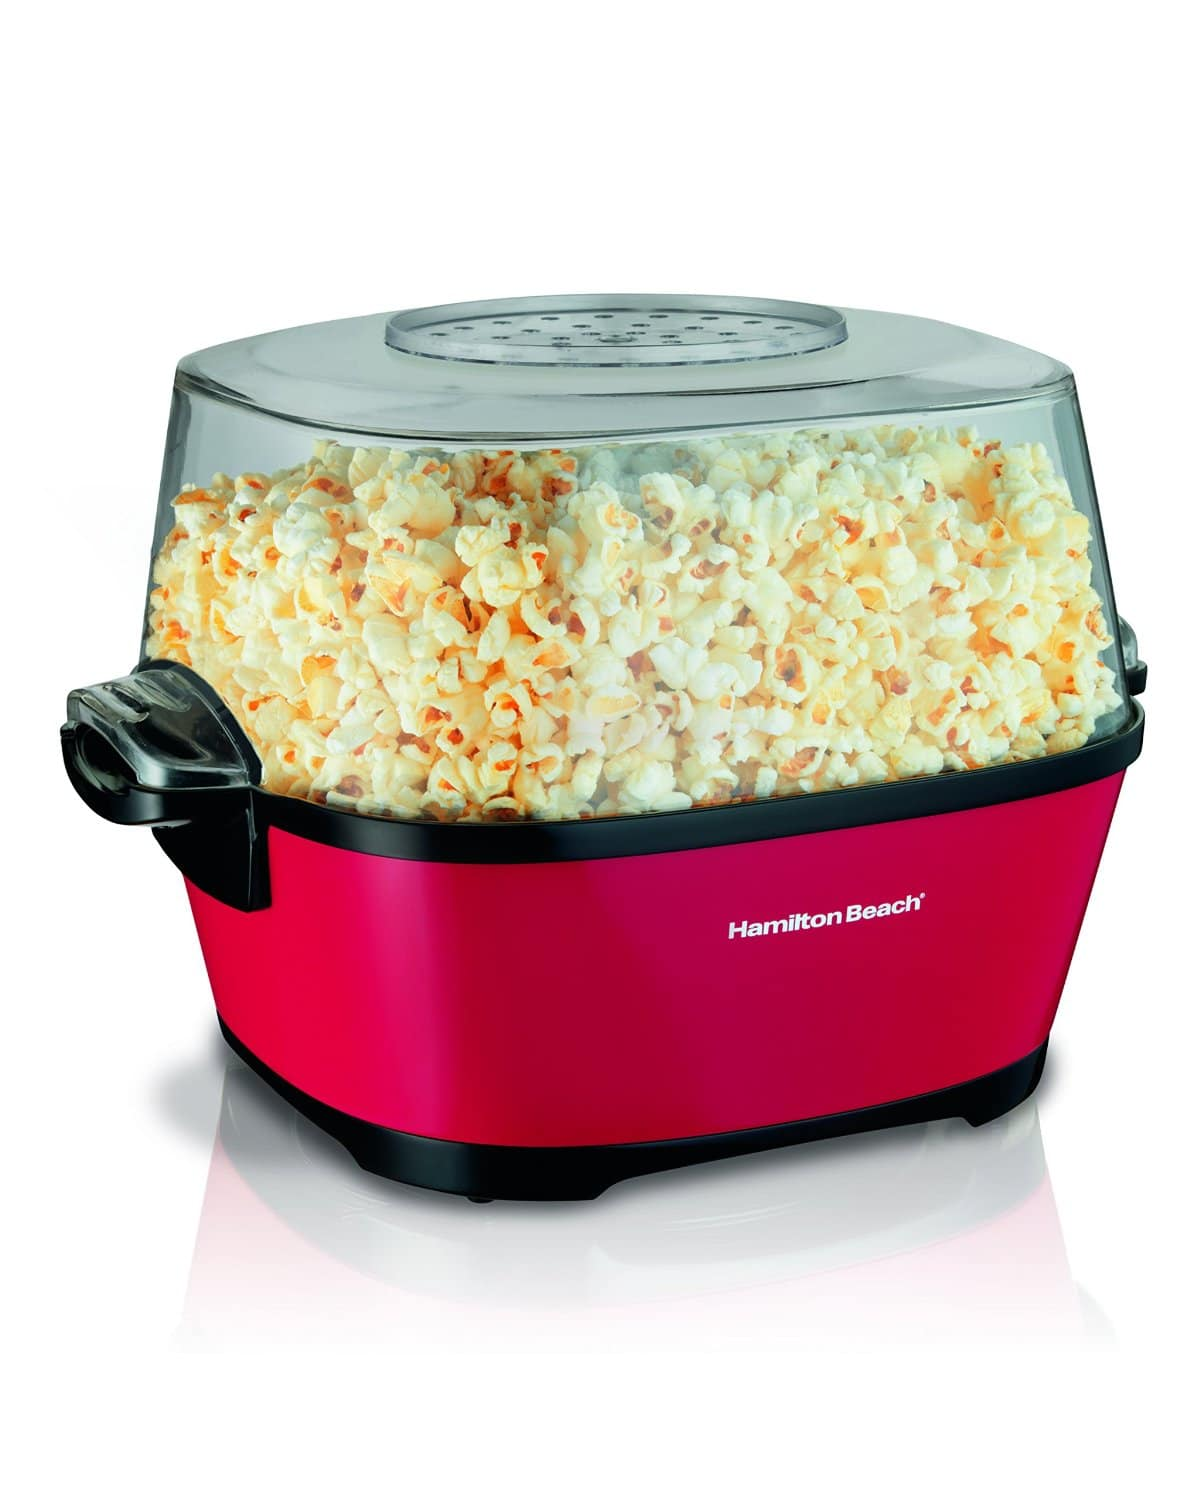 Top 10 Best Popcorn Poppers in 2019 Reviews